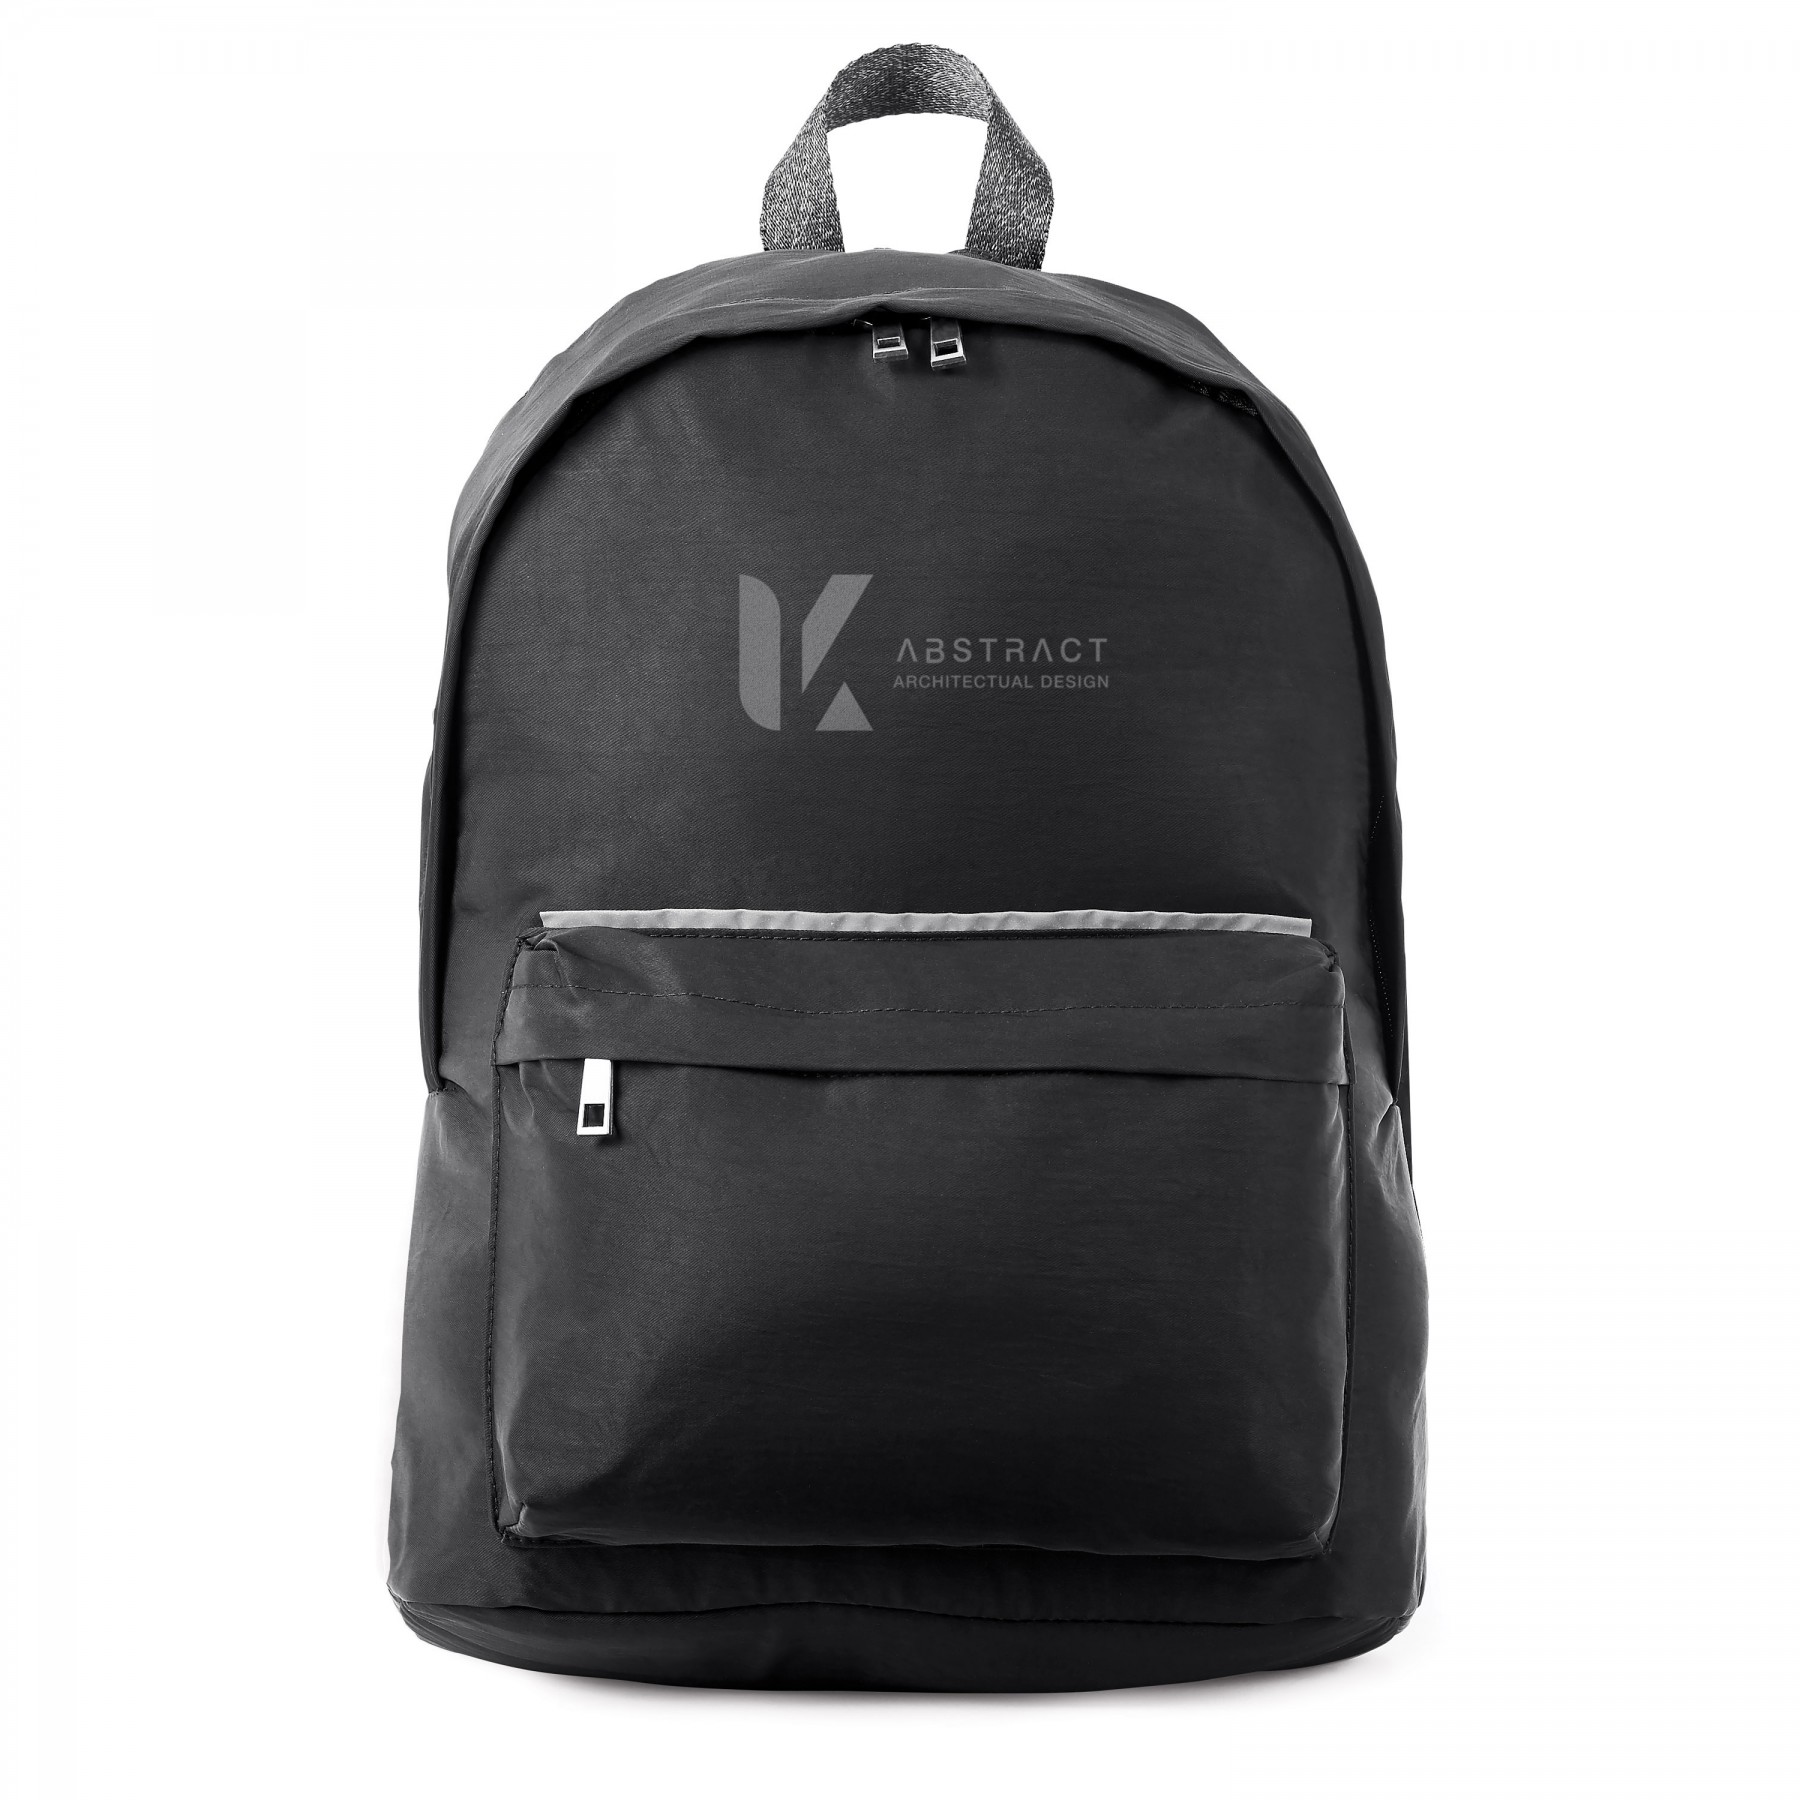 Athleisure Backpack, BG111, One Colour Imprint